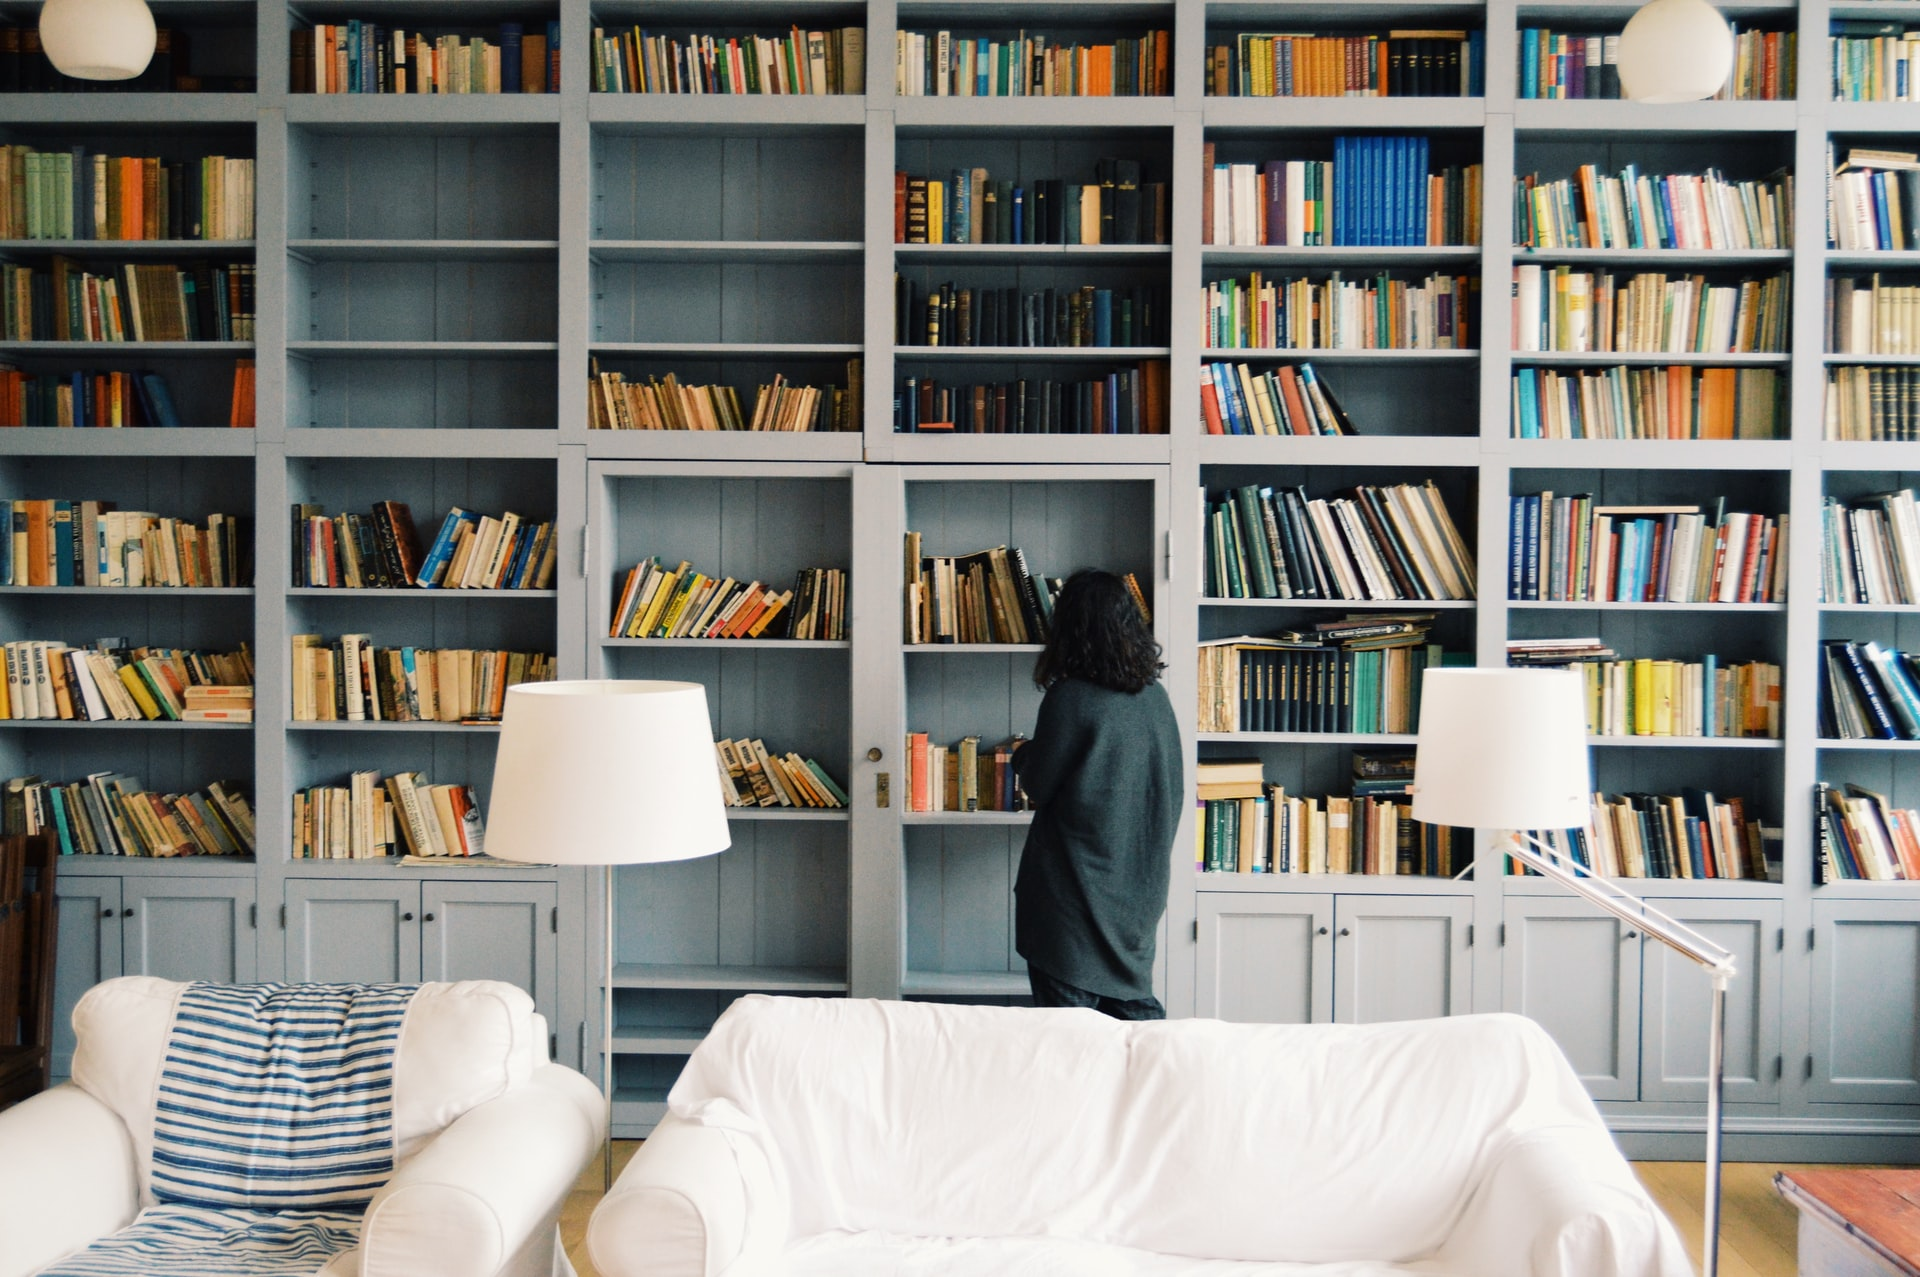 Organized shelves and library books in a home